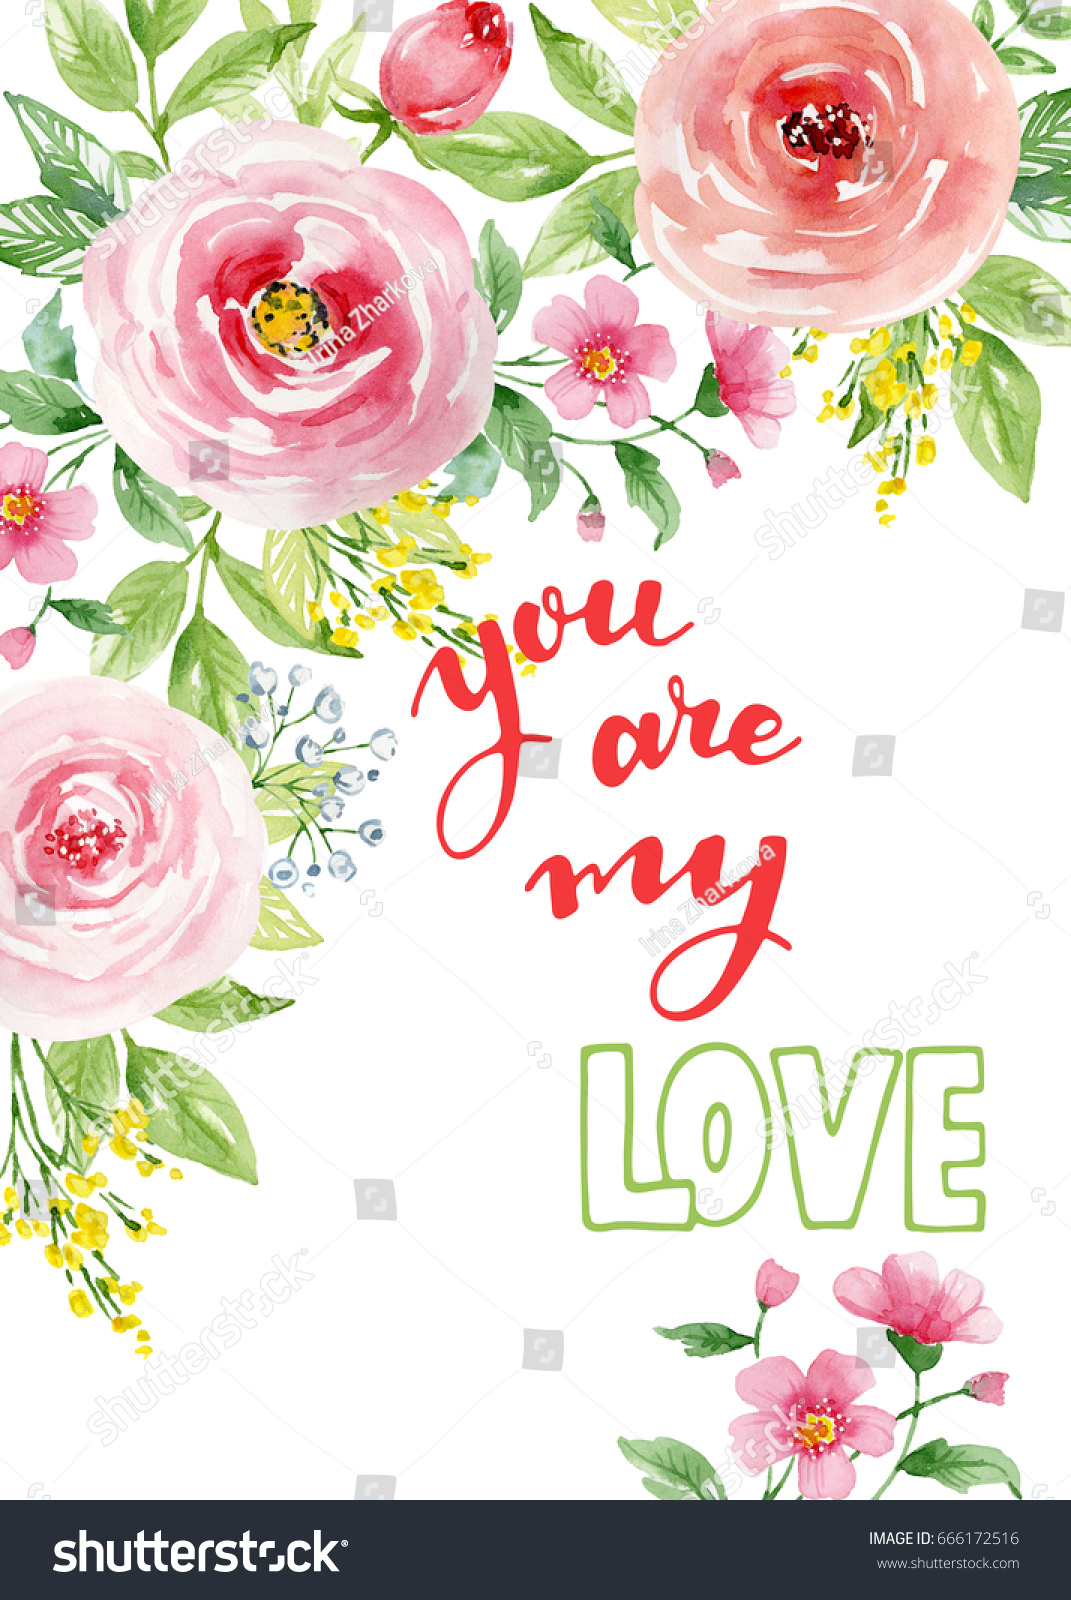 Watercolor Card Roses Floral Frame Lettering Stock Illustration Vintage Story Flower Shabby Rose 1 With And About Love You Are My